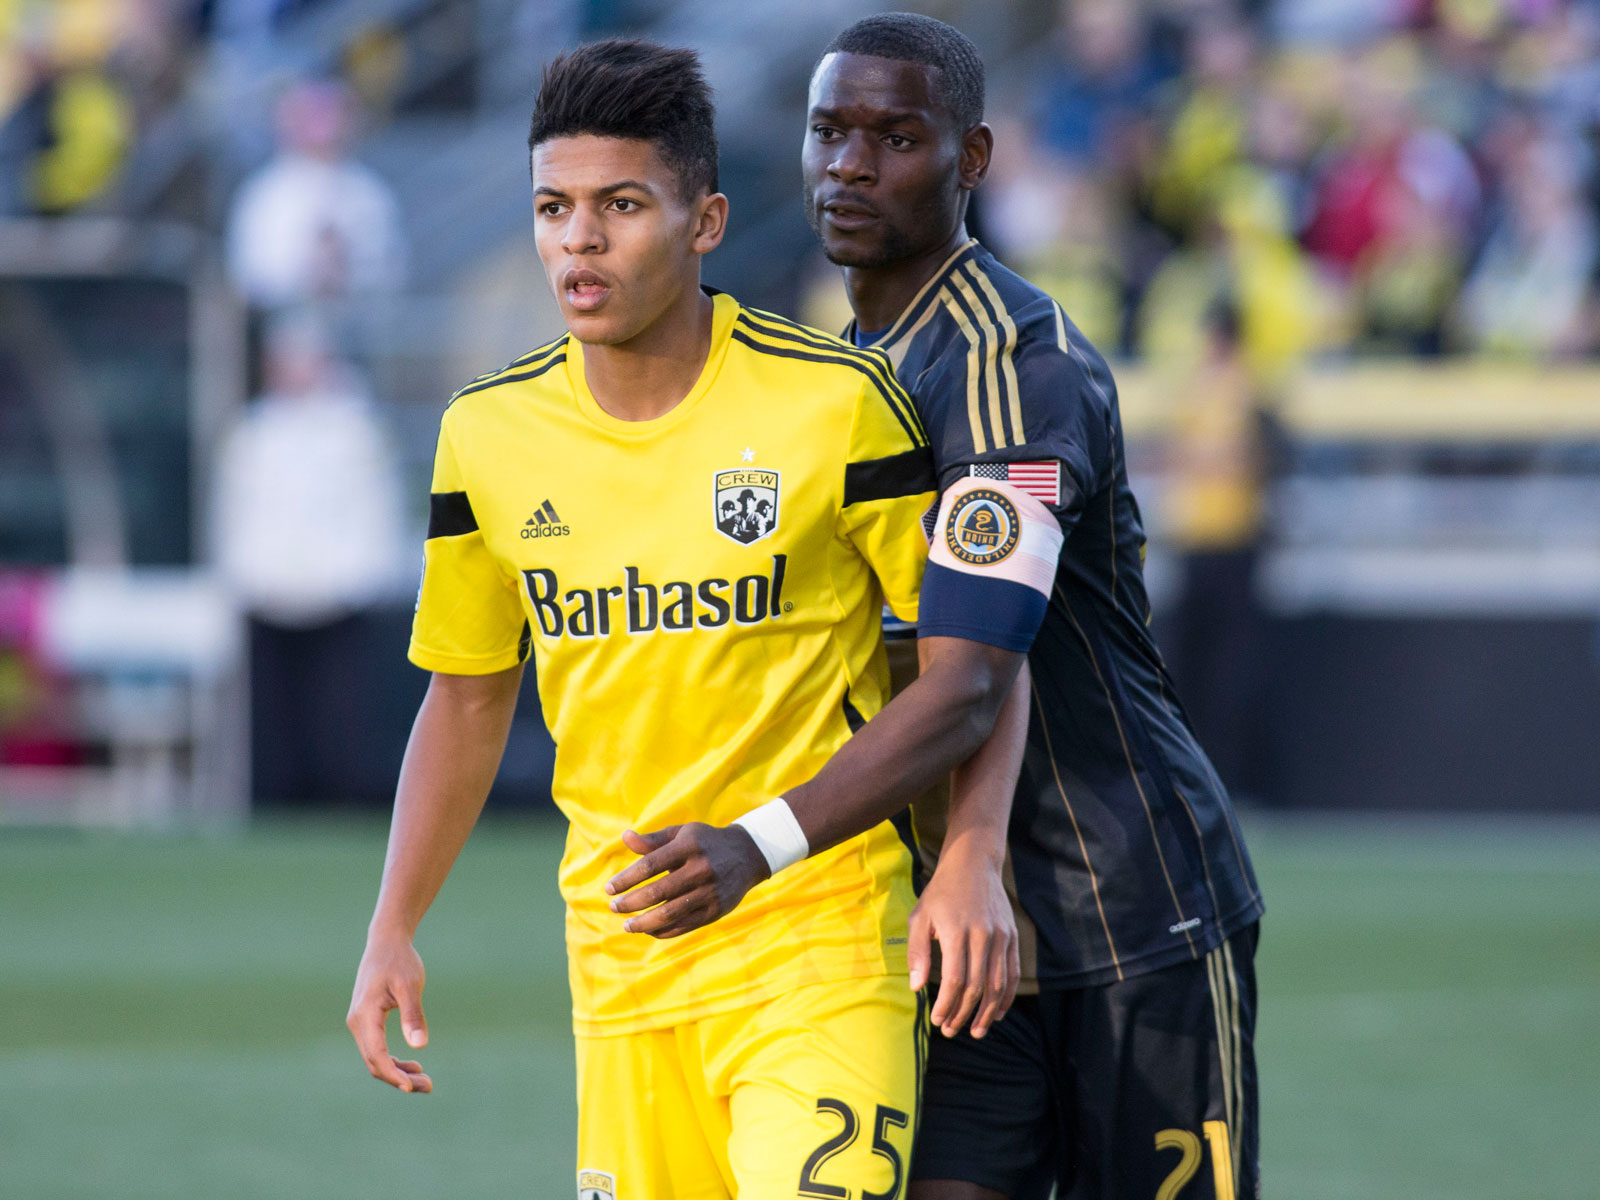 Romain Gall with the Columbus Crew in 2014